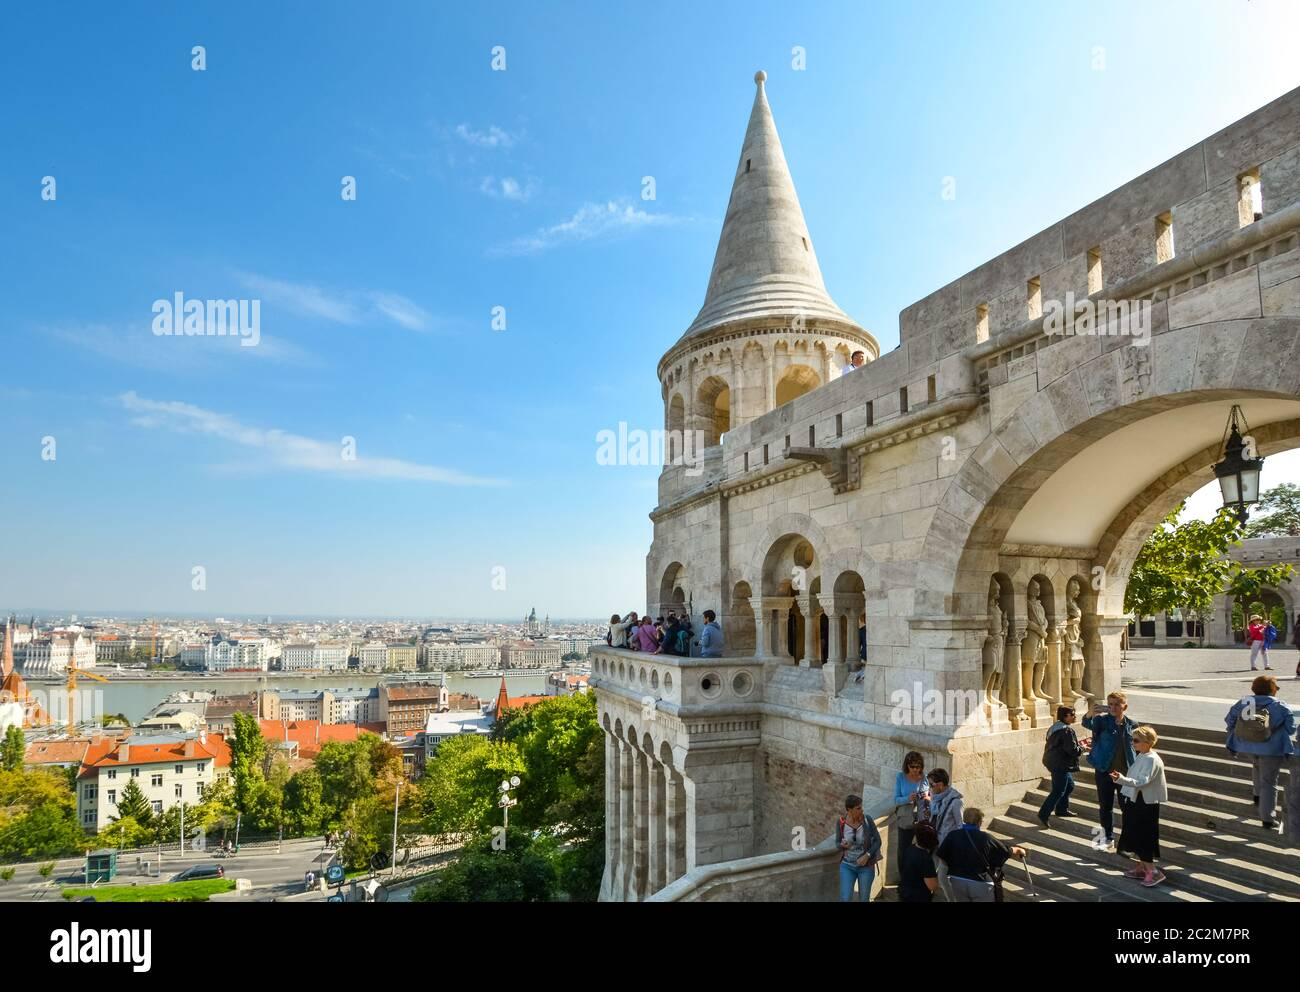 Tourists enjoy the fairy tale towers at Fisherman's Bastion overlooking the Danube River at Budapest Hungary's Castle Hill on a sunny day in autumn Stock Photo